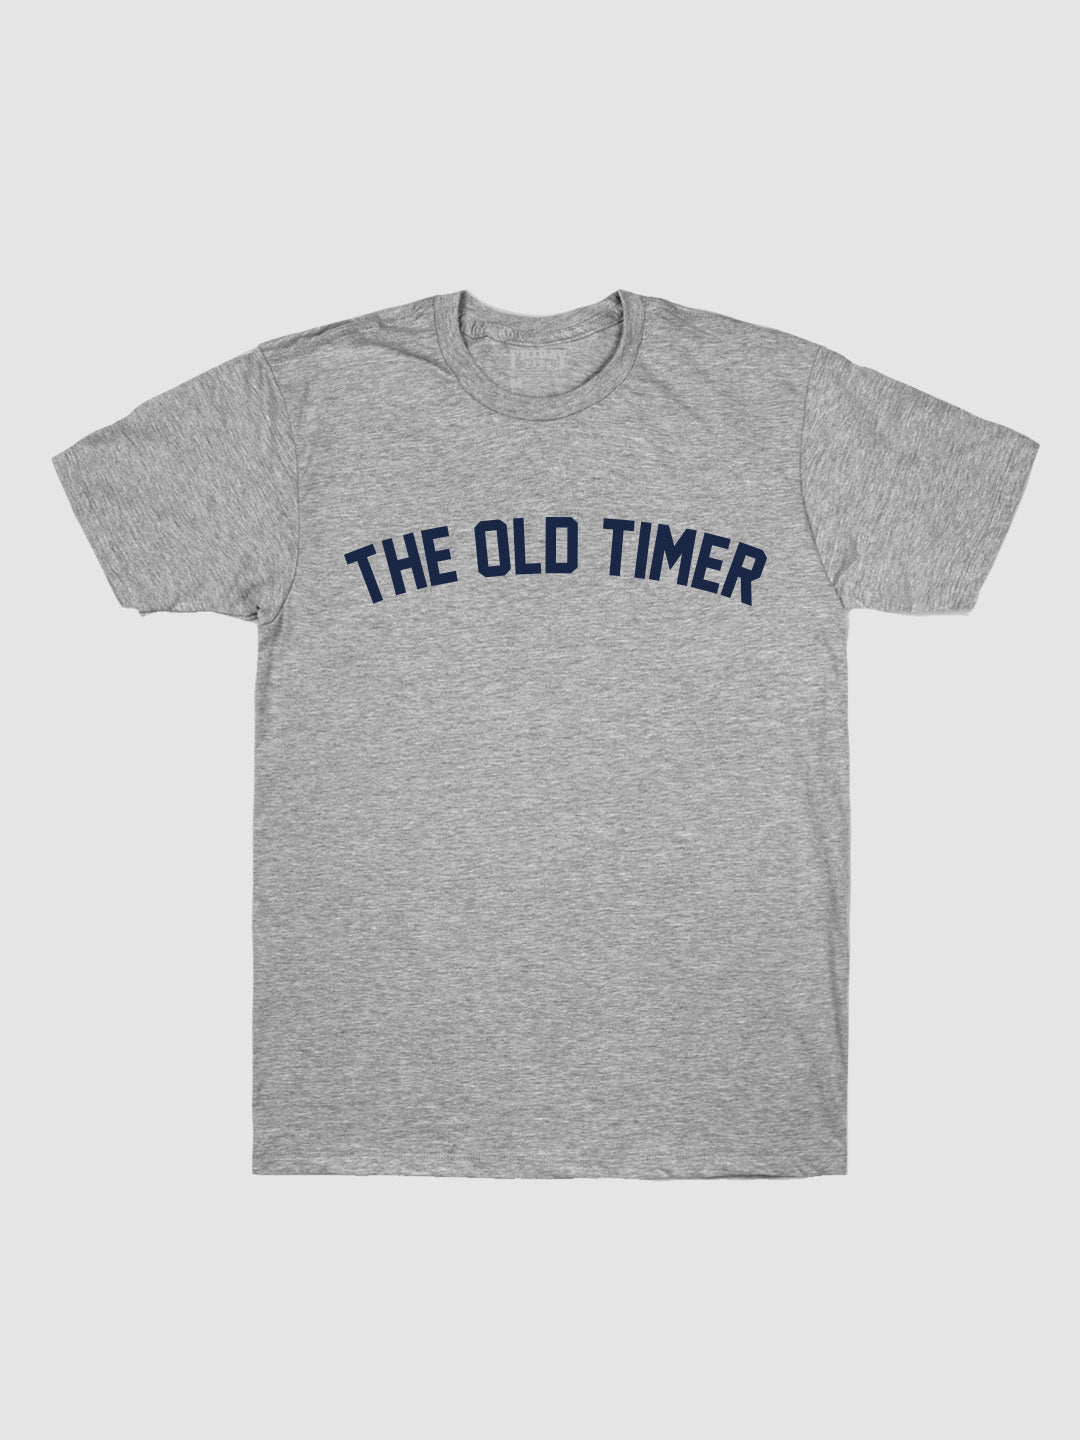 The Old Timer T-Shirt